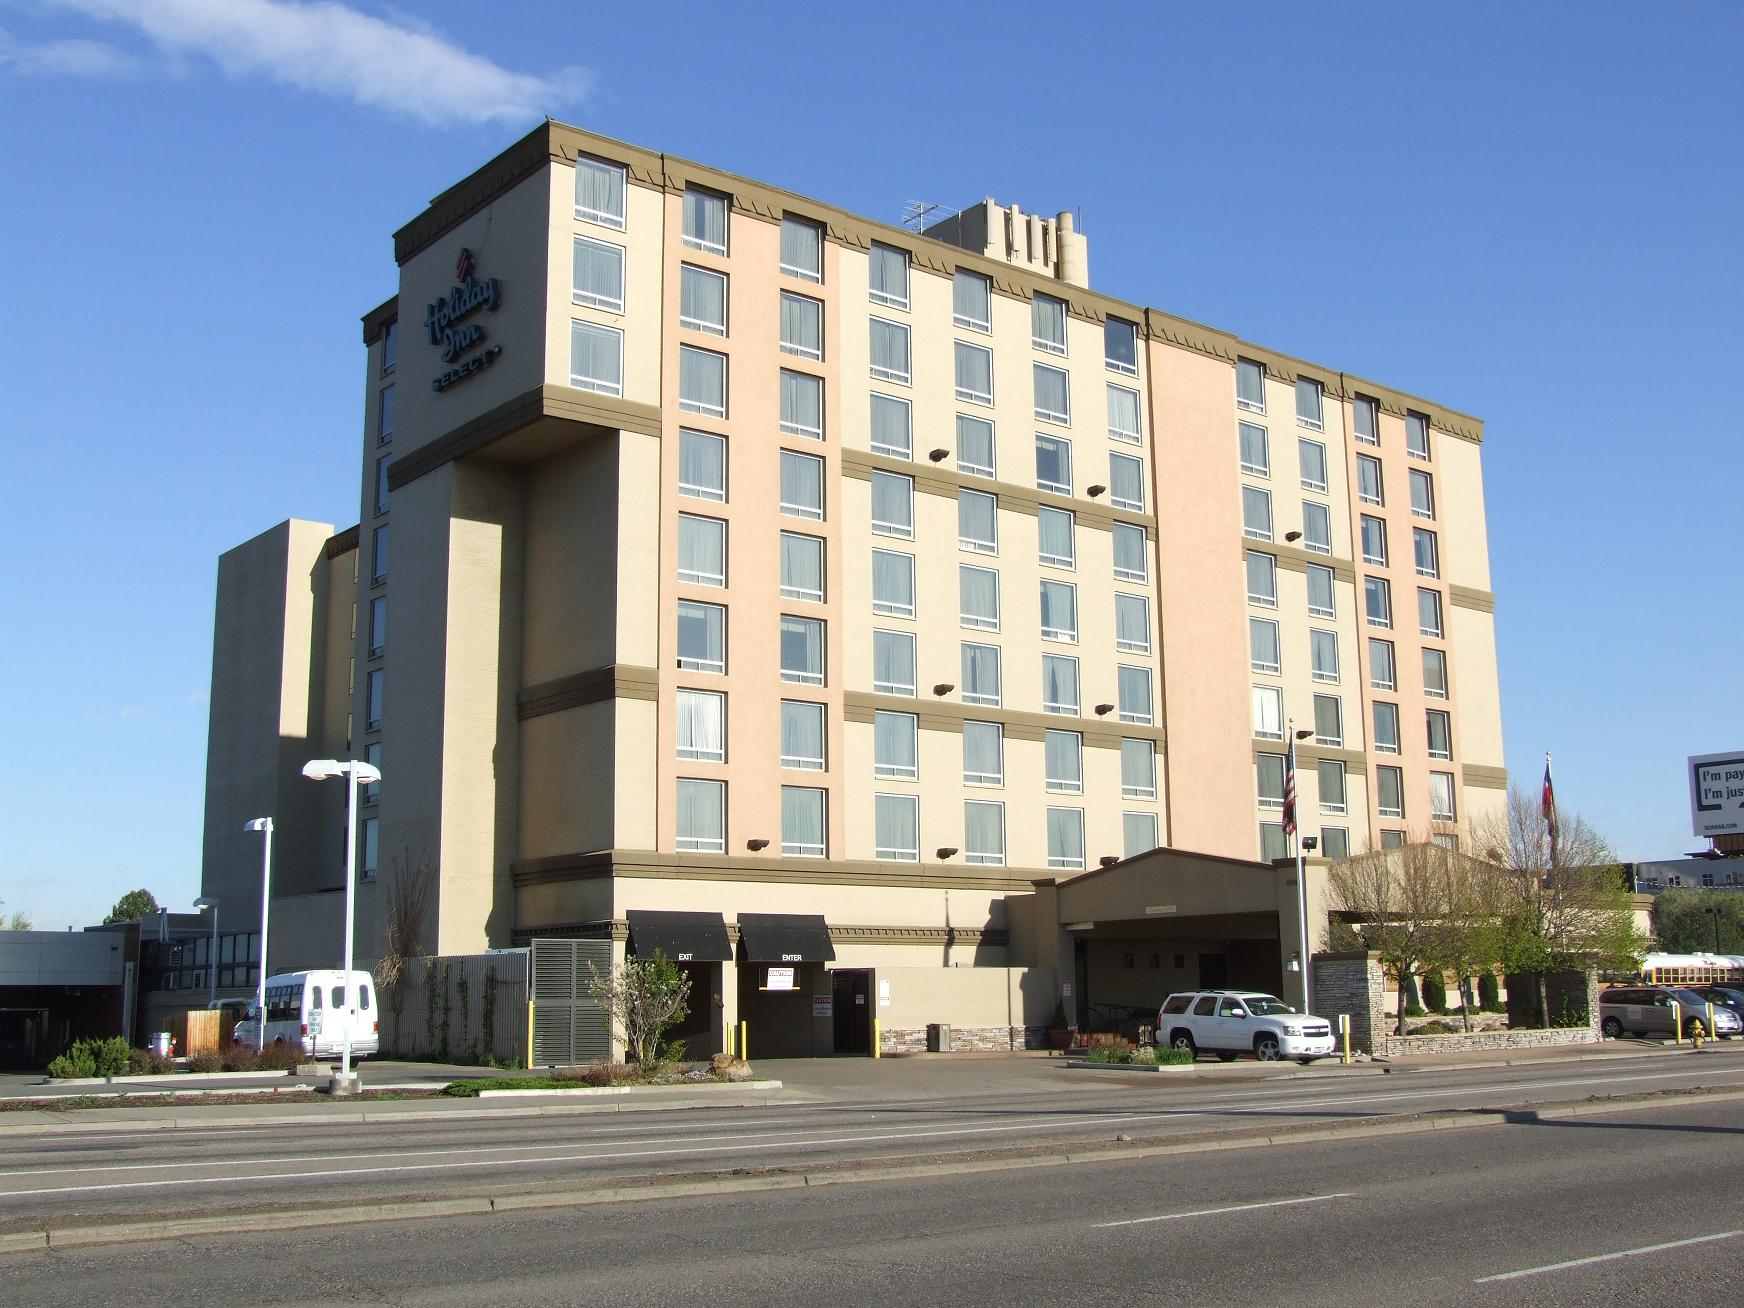 Holiday Inn Hotel Cody Wyoming